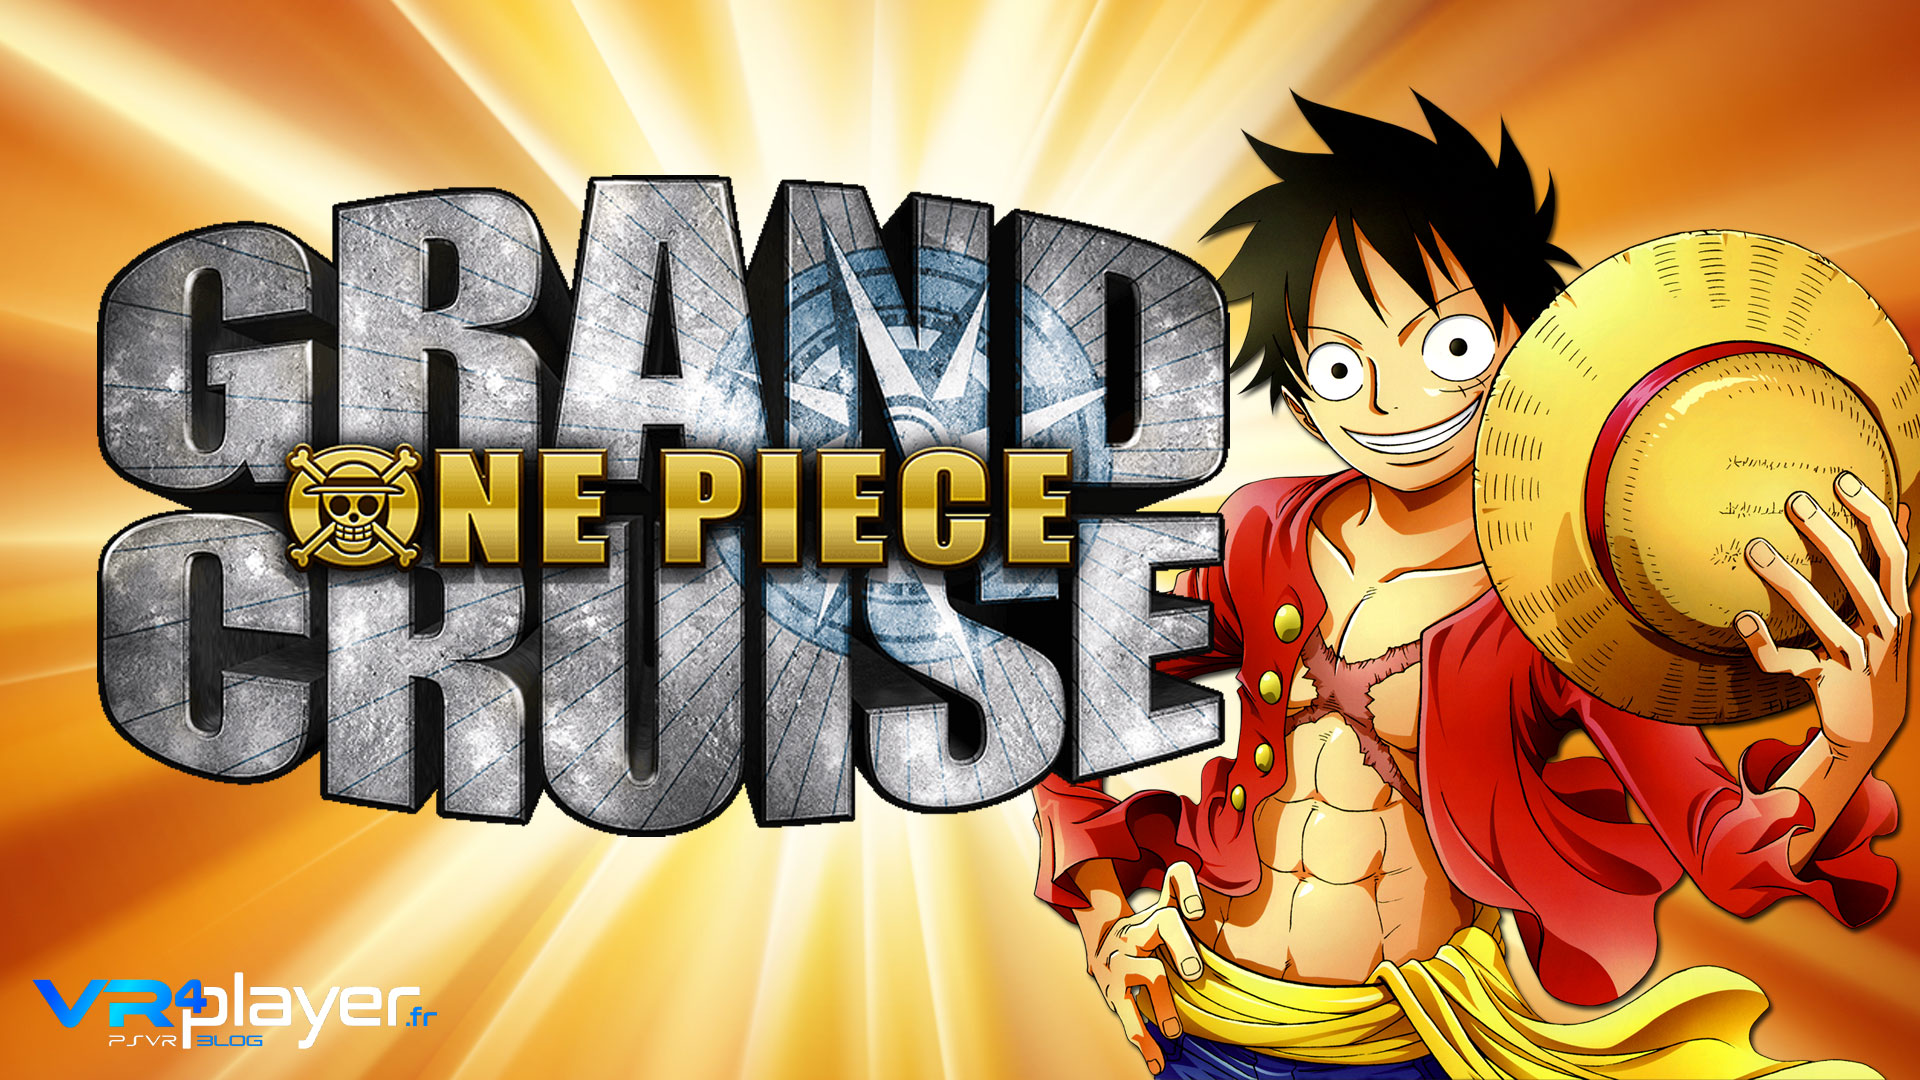 One Piece Grand Cruise sur PSVR vrplayer.fr